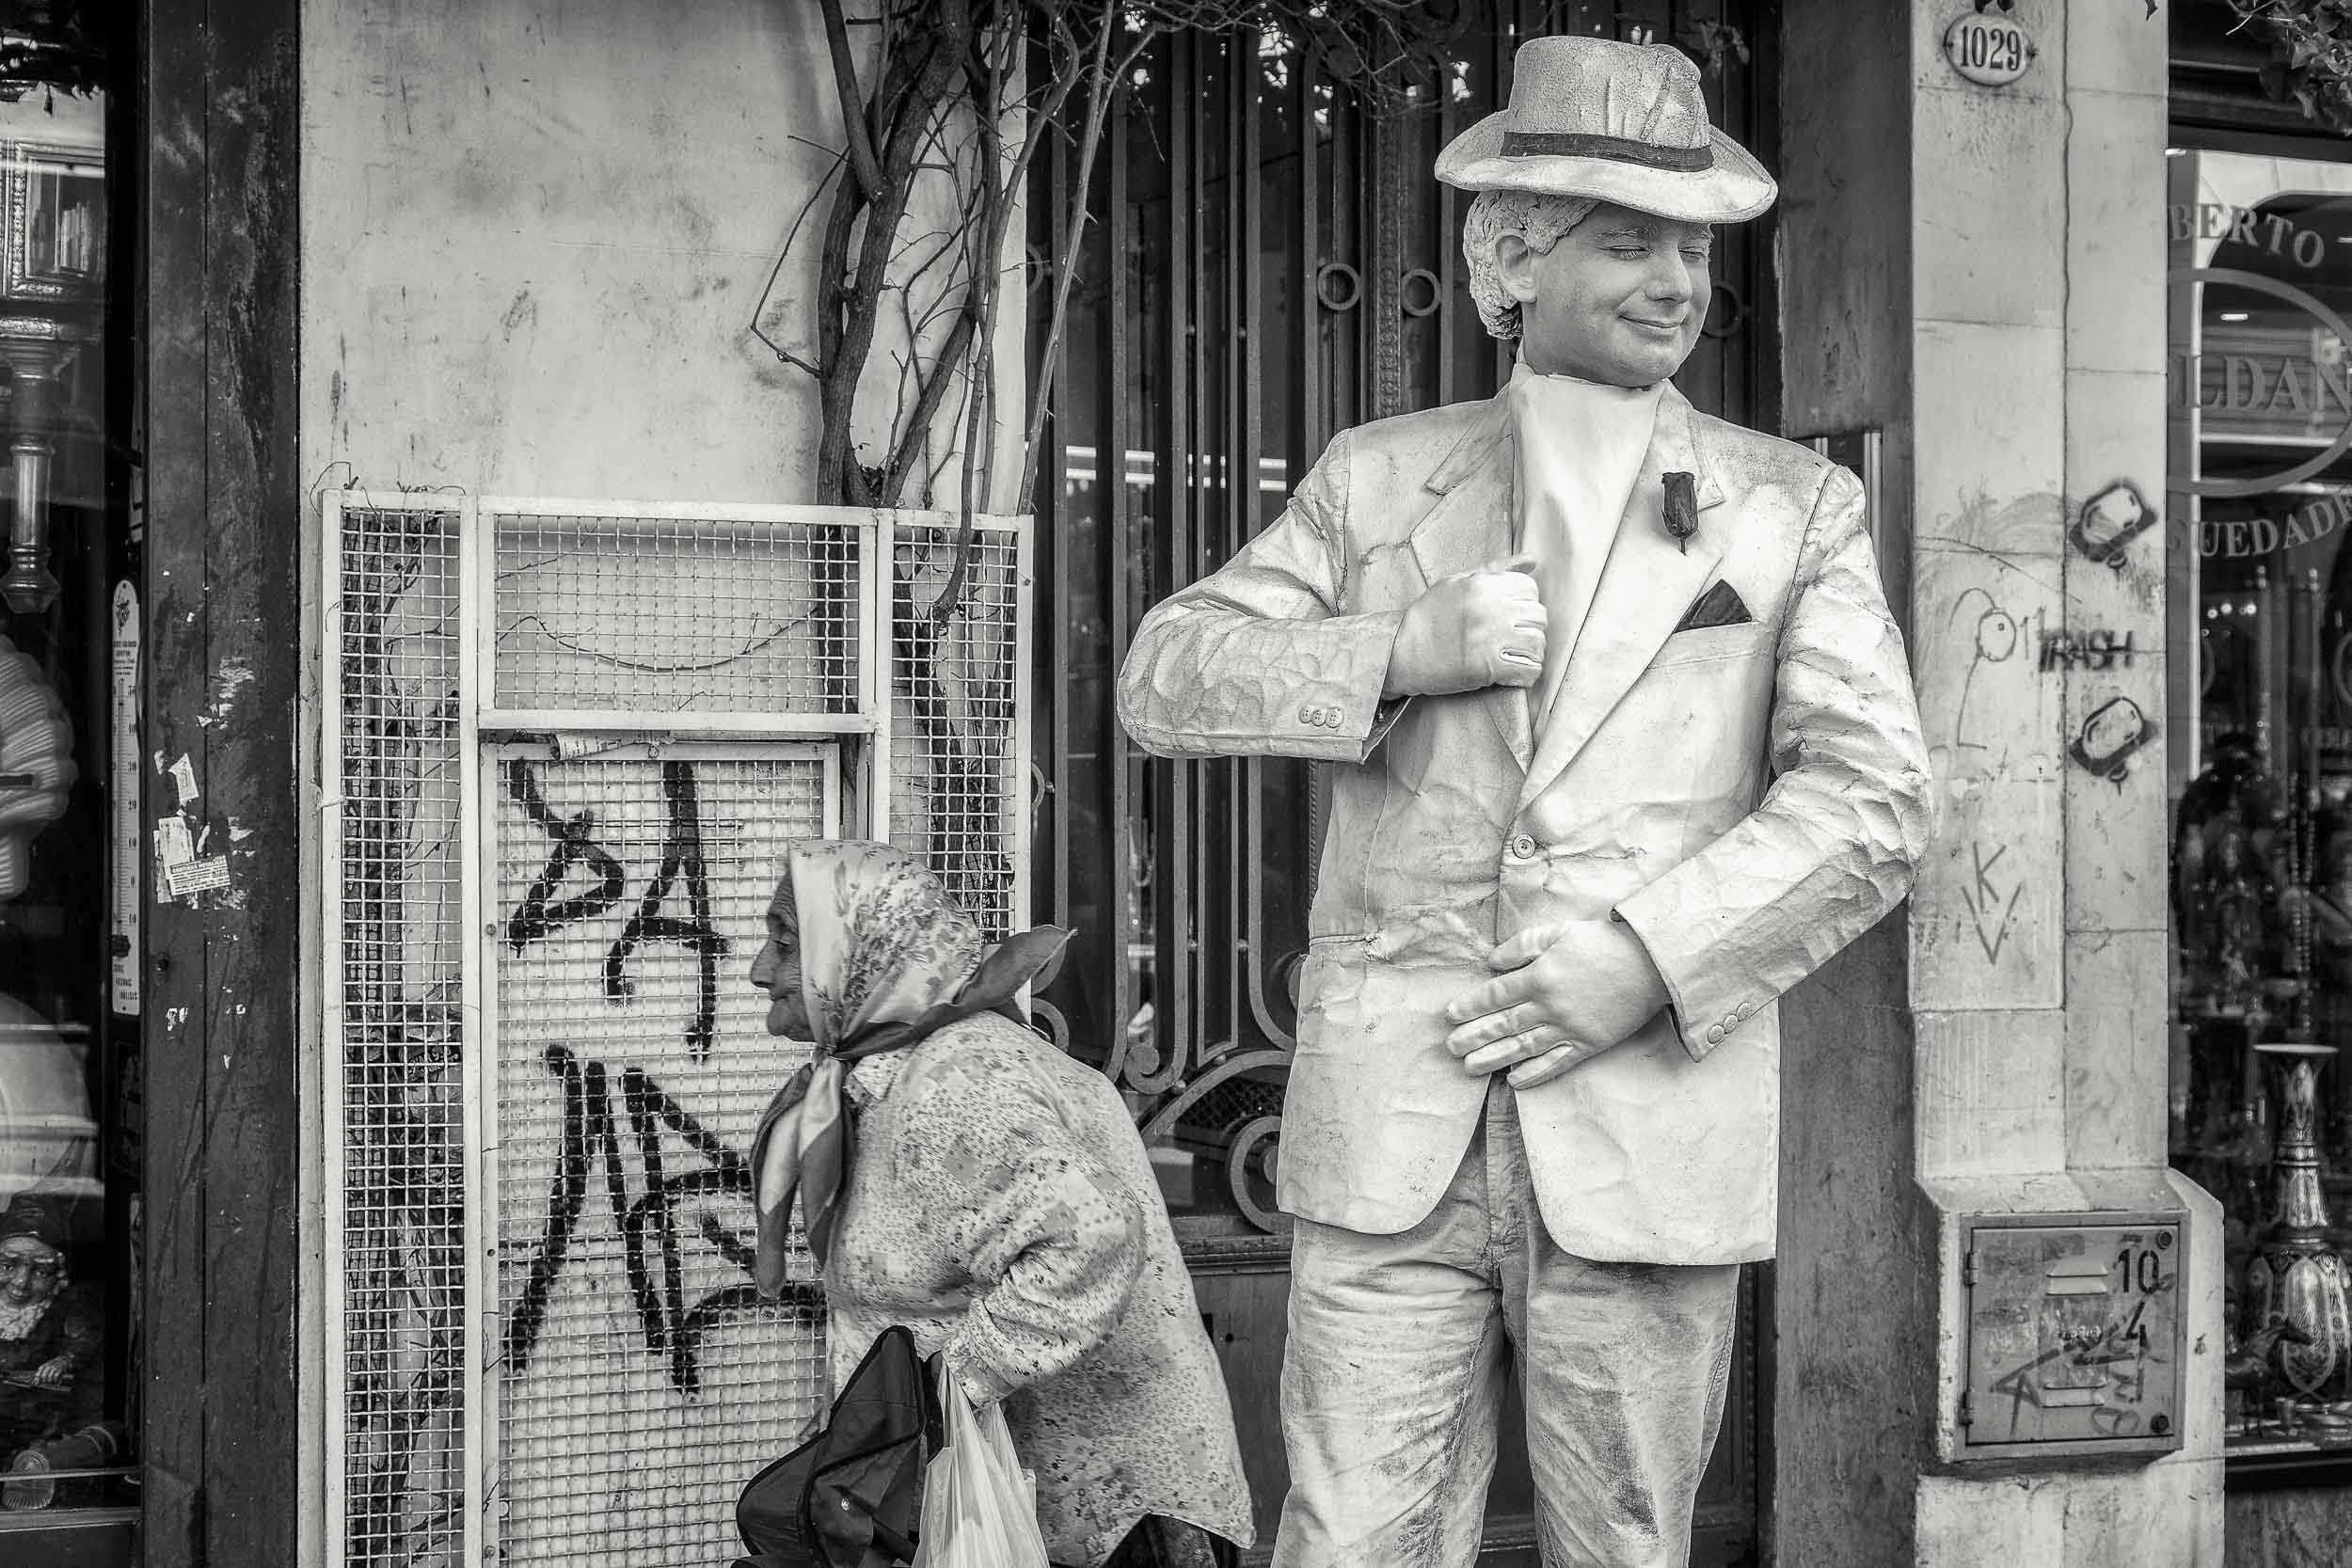 A classic street scene featuring a street performer and an elderly passerby in San Telmo, Buenos Aires, Argentina.